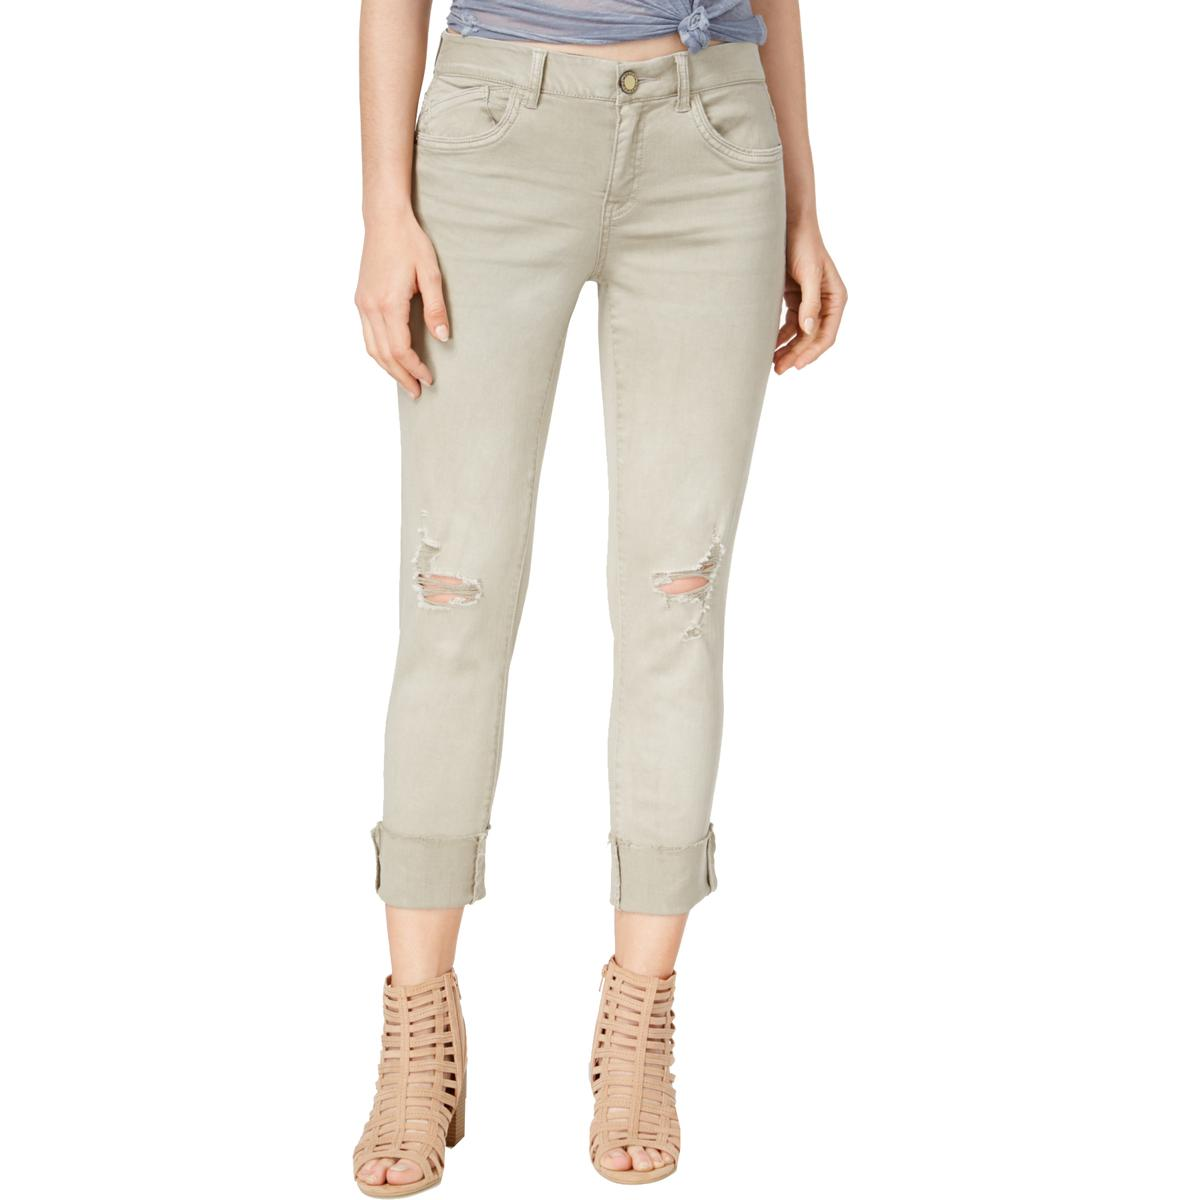 70ecdfff74c Details about Jolt Womens Beige Ripped Mid-Rise Casual Skinny Jeans Juniors  13 31W BHFO 5273